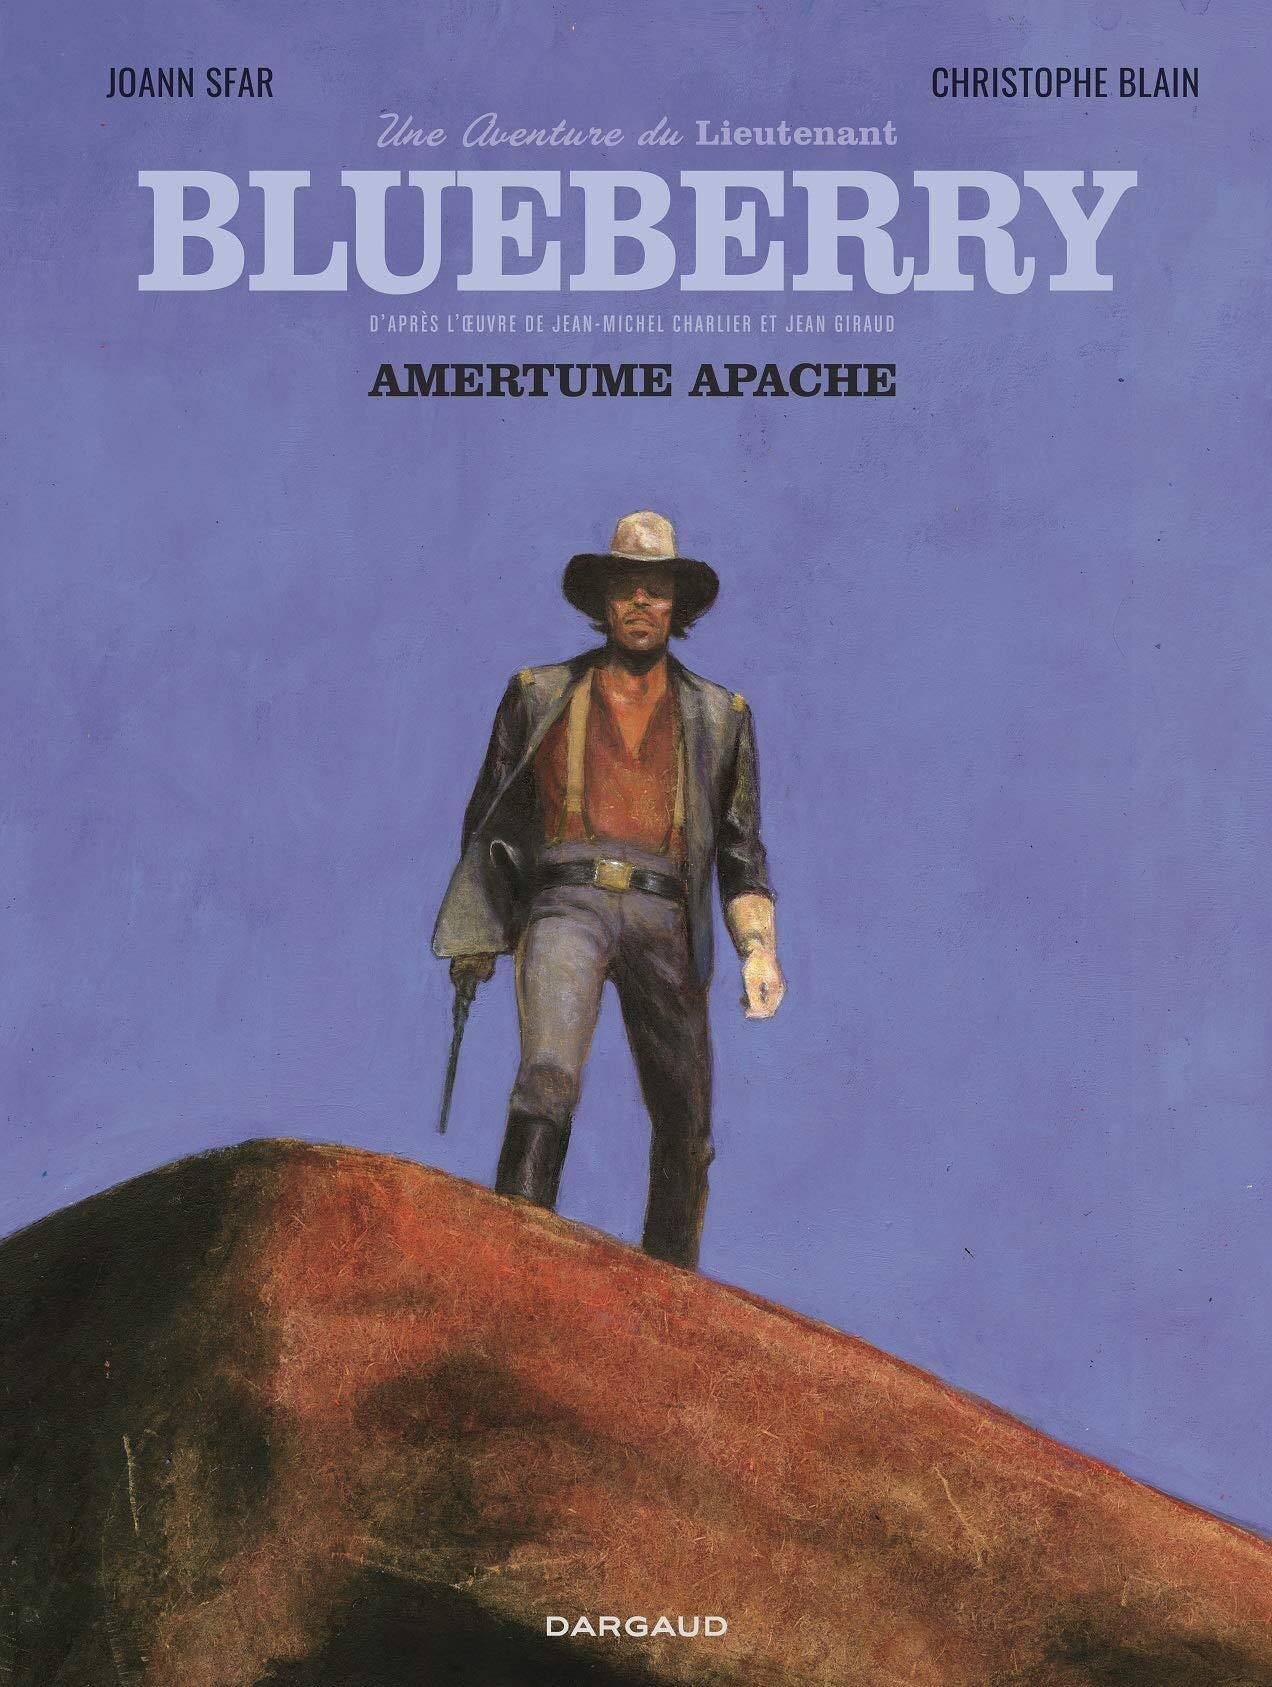 Blueberry couv